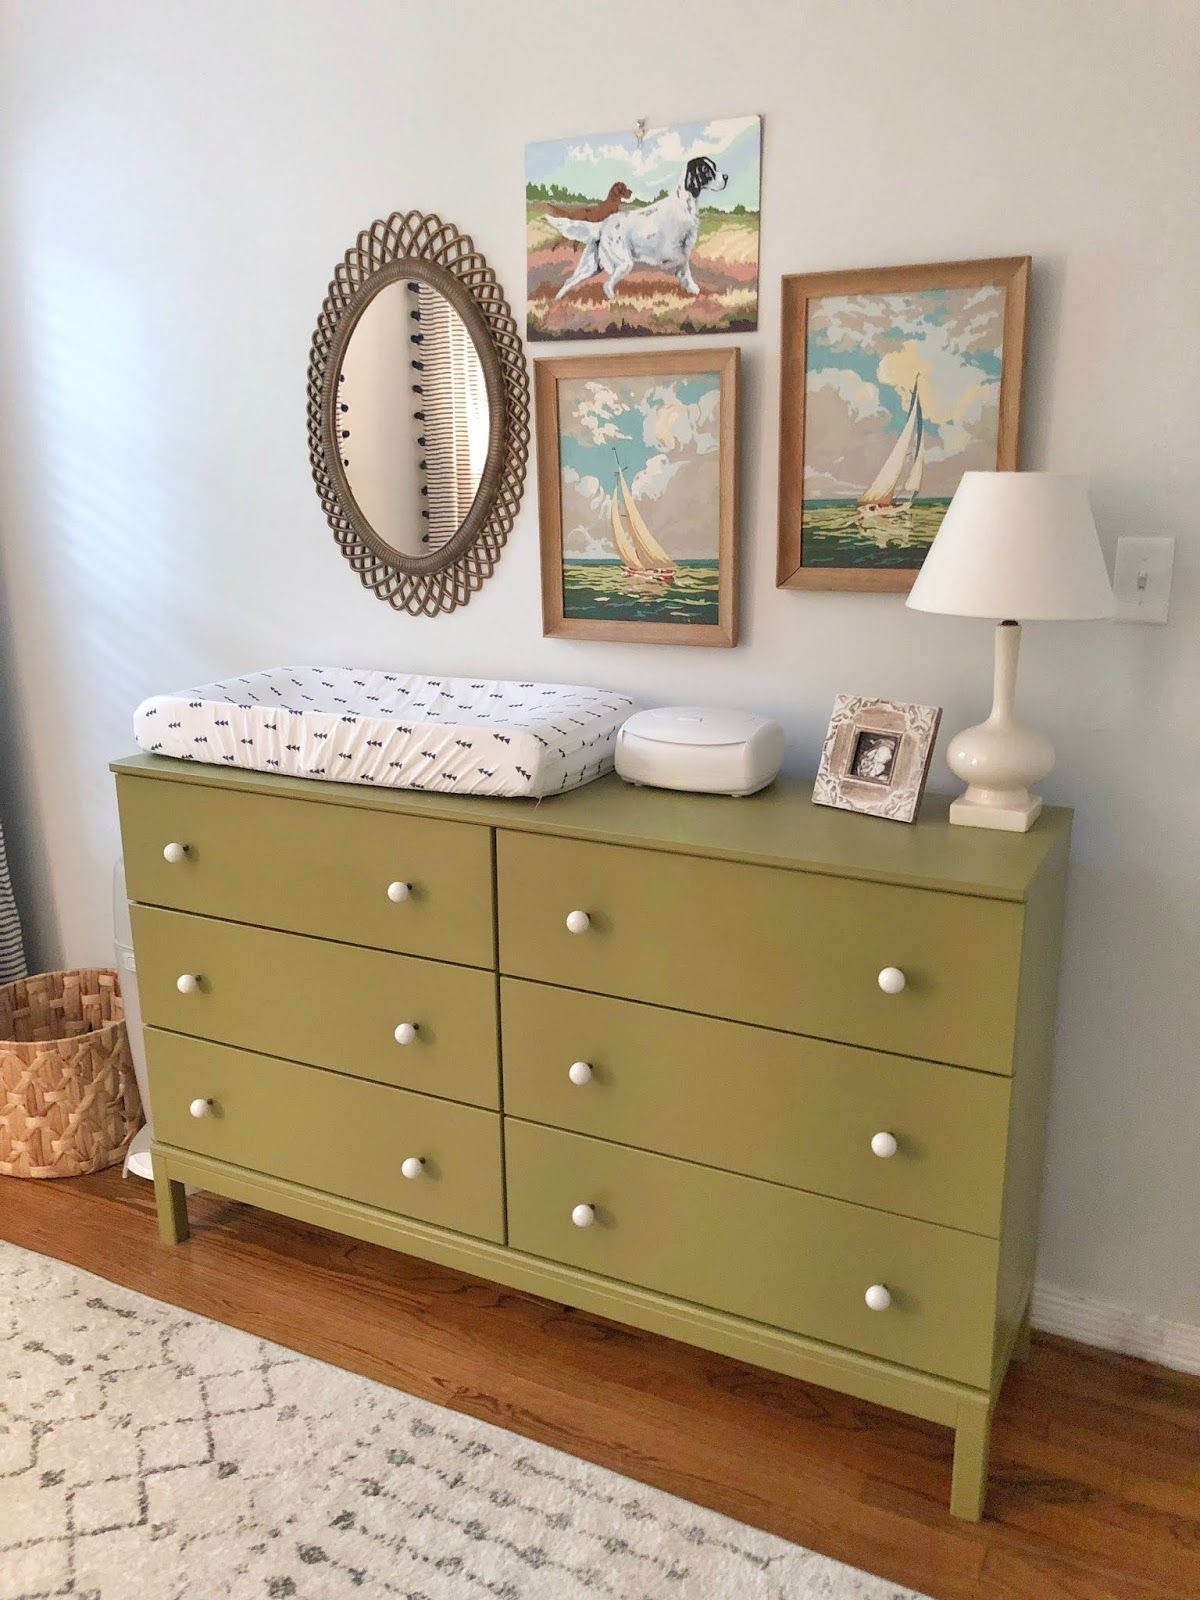 6 drawer changing table on mills whimsical vintage nursery something lovely blog olive green dresser changing table paint vintage nursery decor changing table dresser green dresser mills whimsical vintage nursery